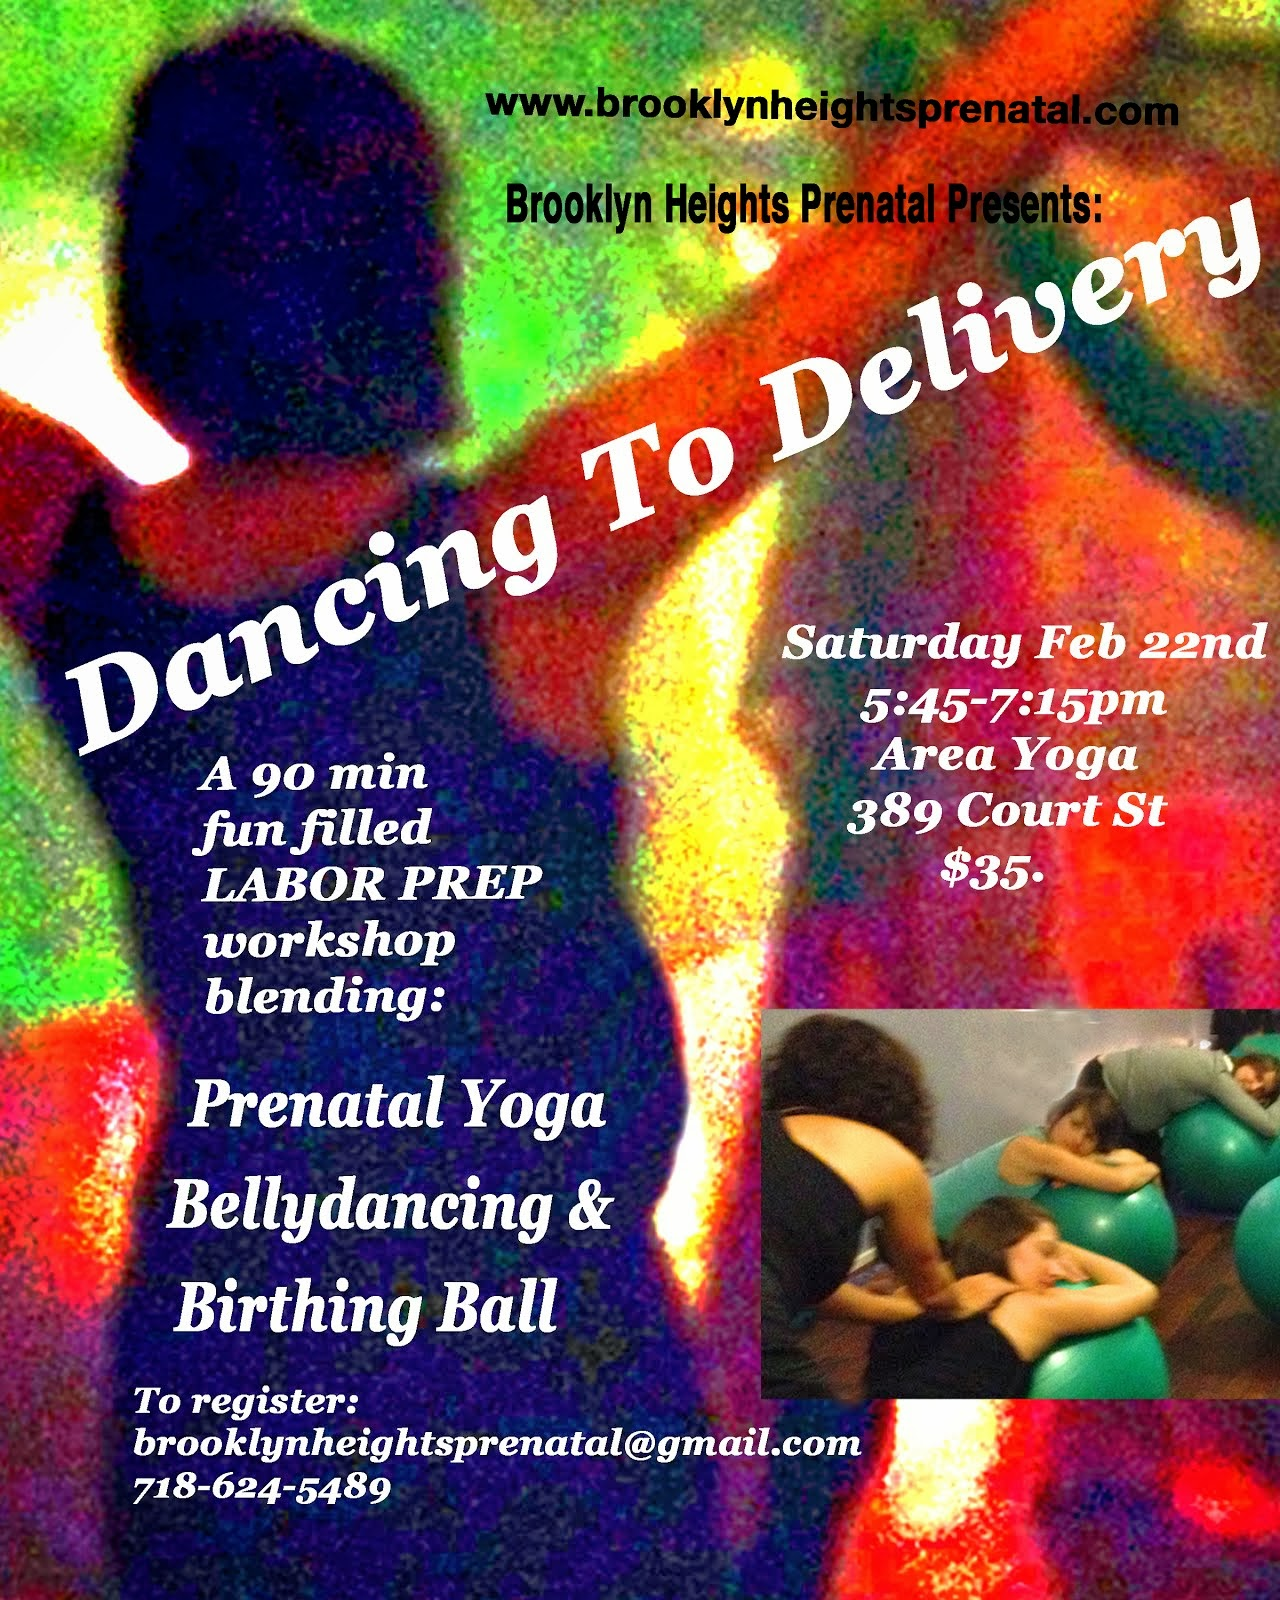 Feb 22nd  DANCING TO DELIVERY Workshop On Court St